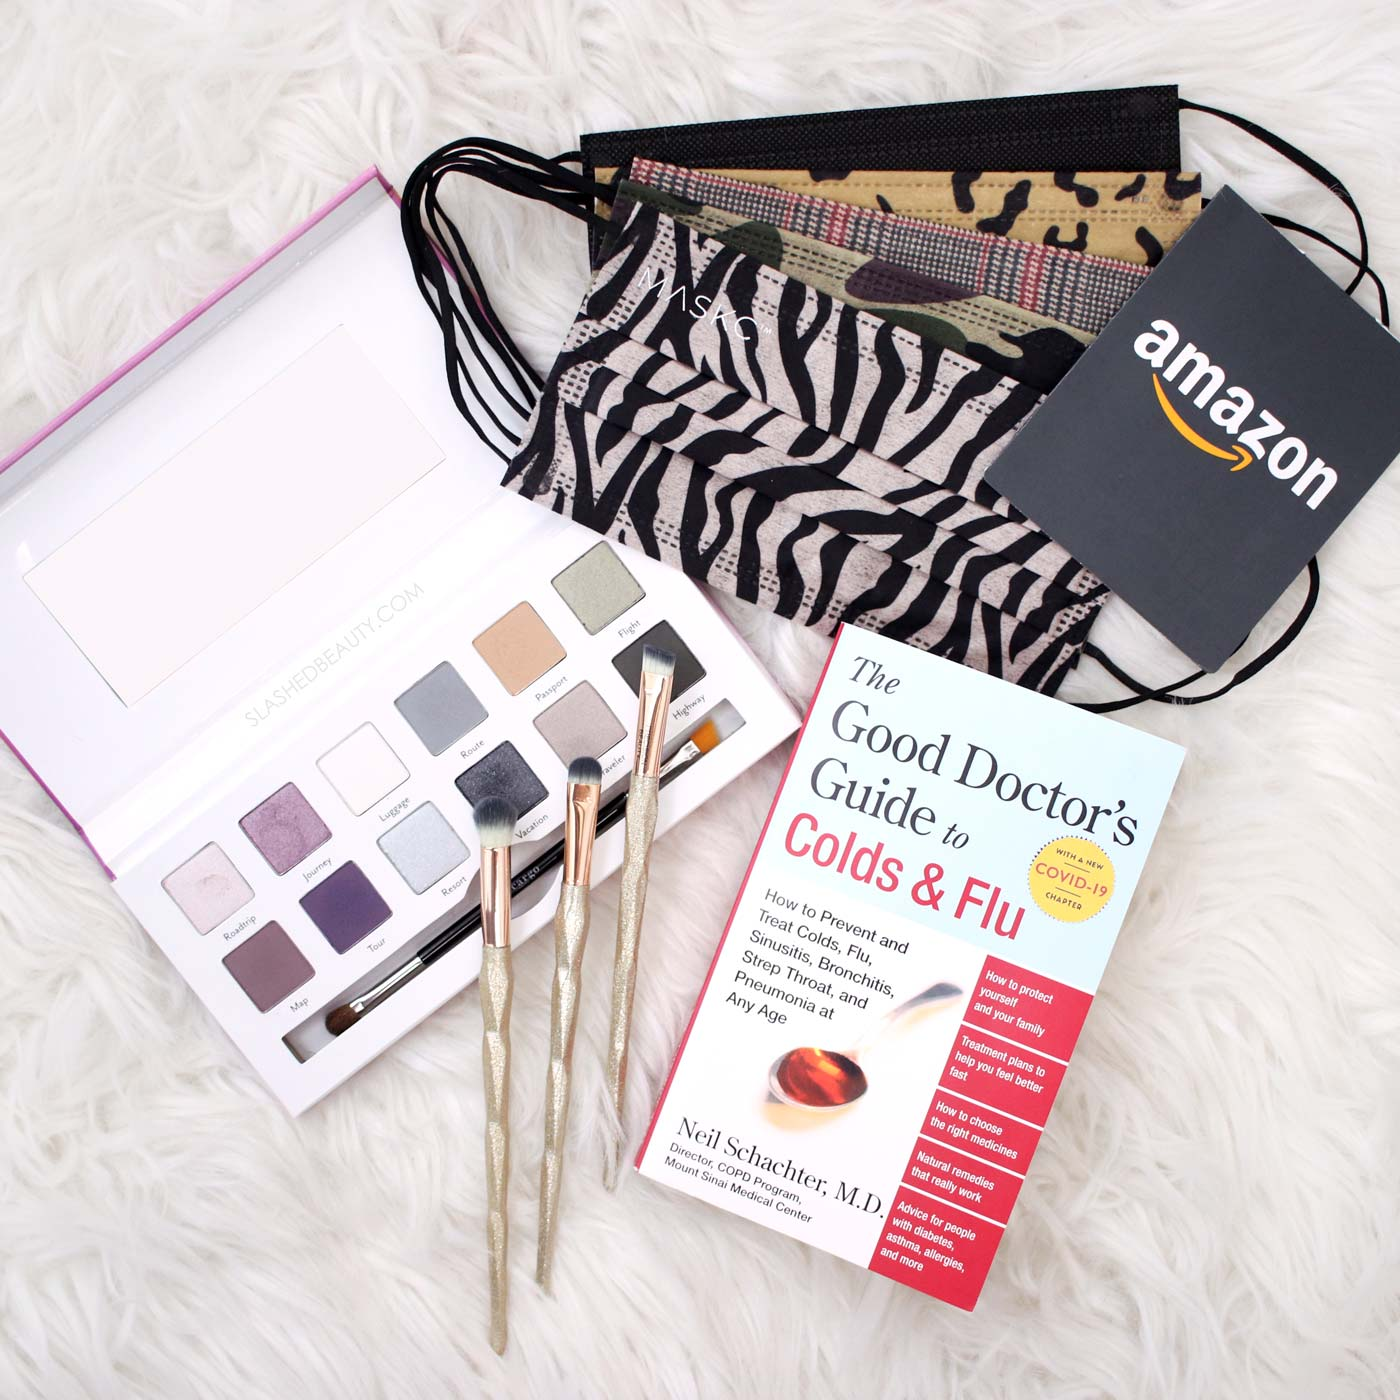 2021 Essentials Giveaway: Masks, Makeup & Amazon Gift Card! | Slashed Beauty